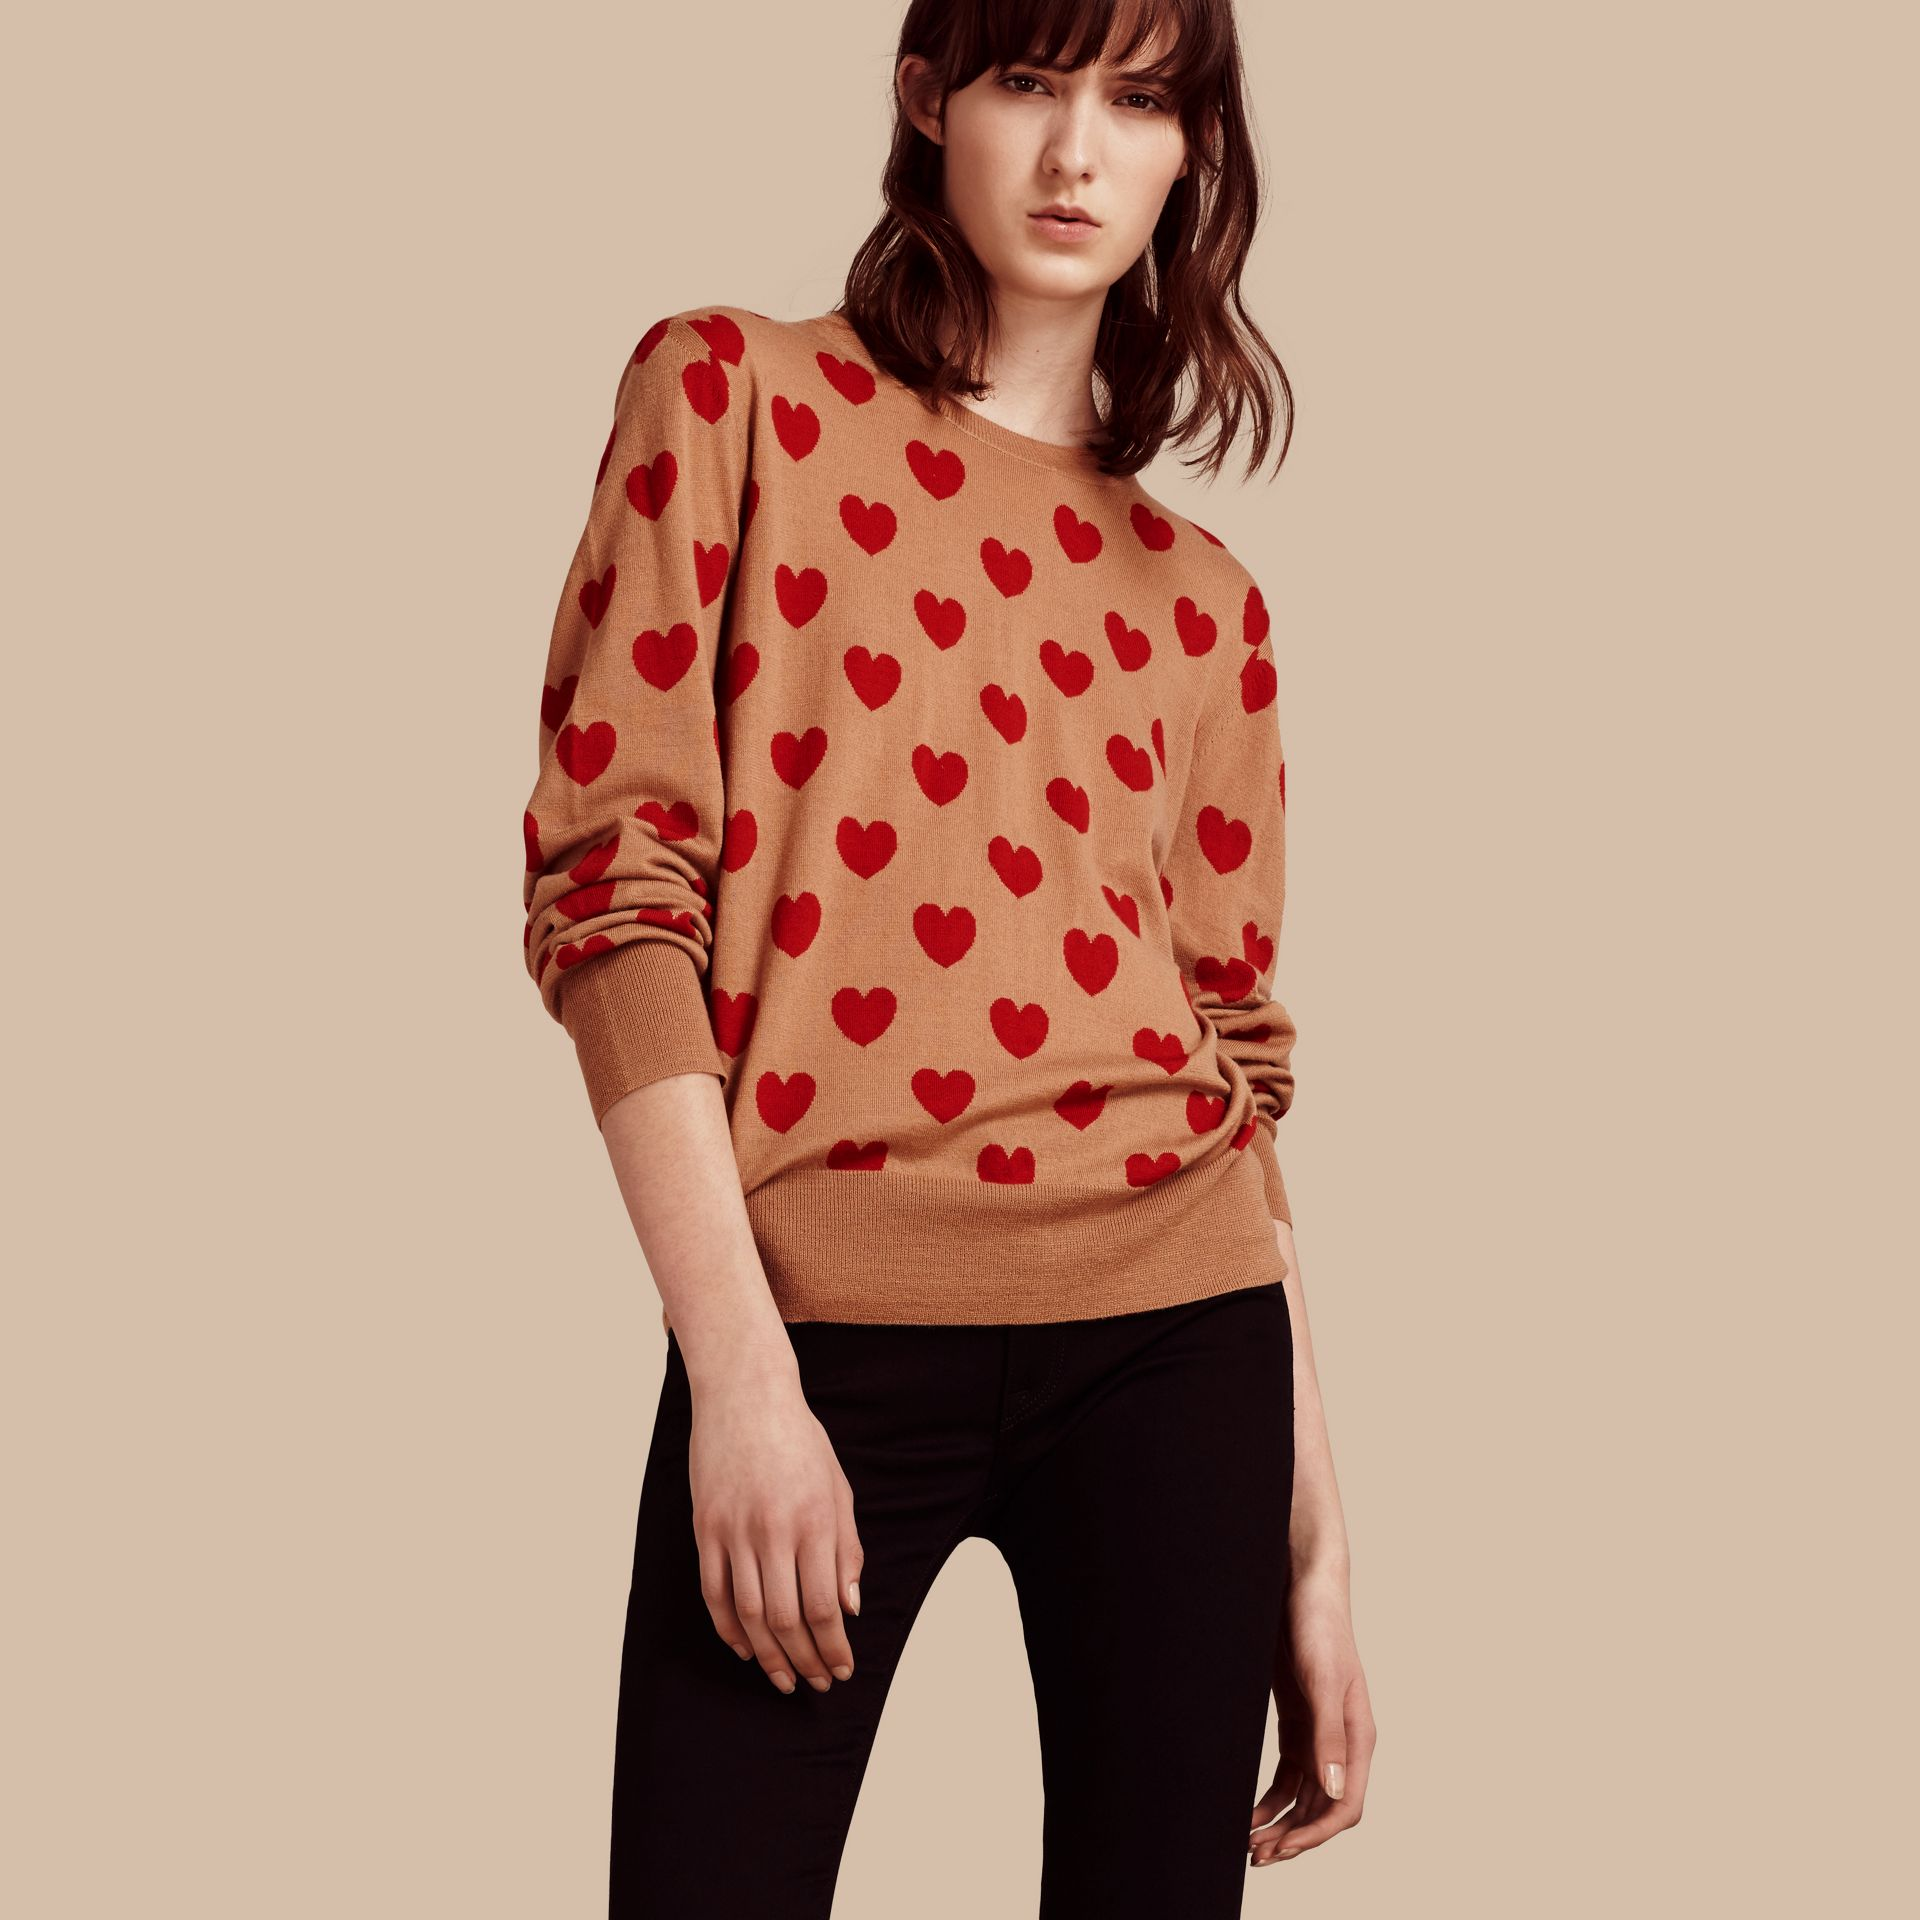 Heart Intarsia Merino Wool Sweater in Camel - Women | Burberry - gallery image 1